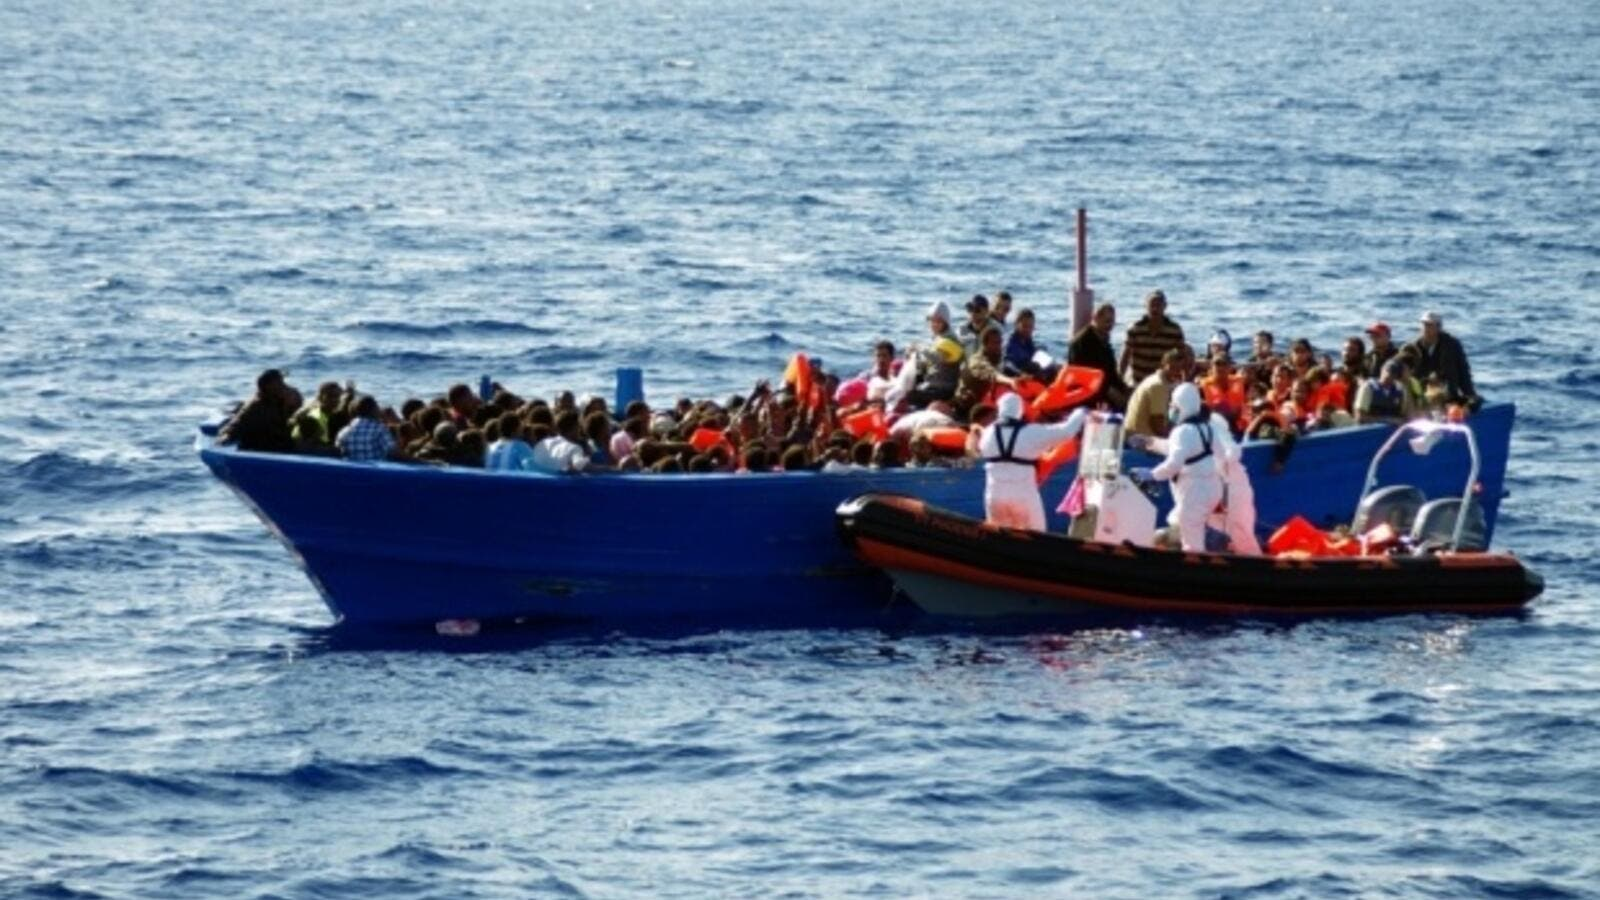 A file photo of a boat smuggling African refugees in the Mediterranean Sea. (AFP/File)